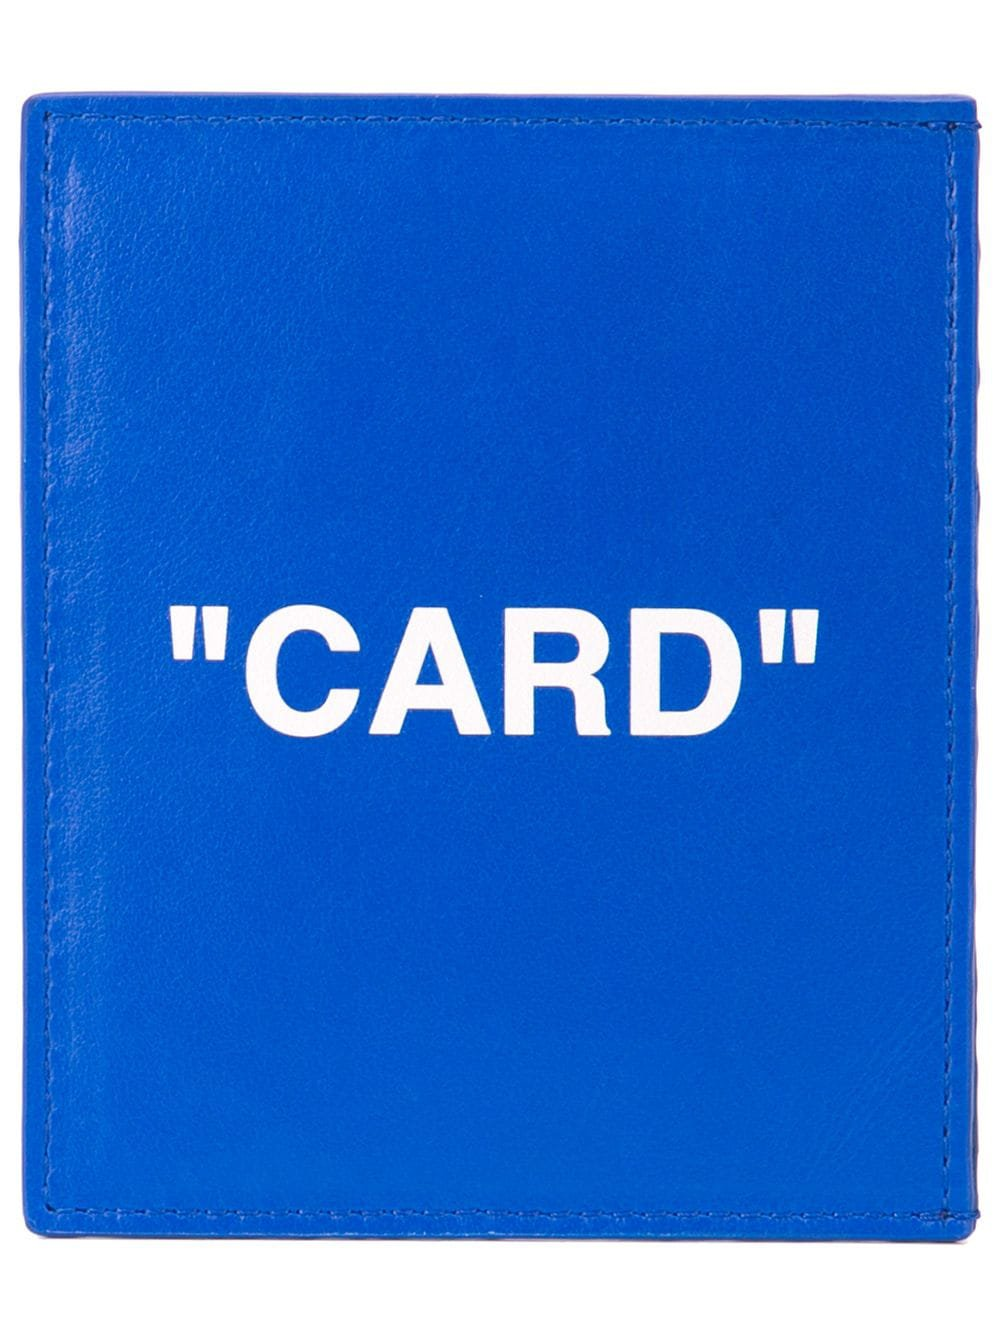 Off-White quote card holder £302 - Shop Online. Same Day Delivery in London